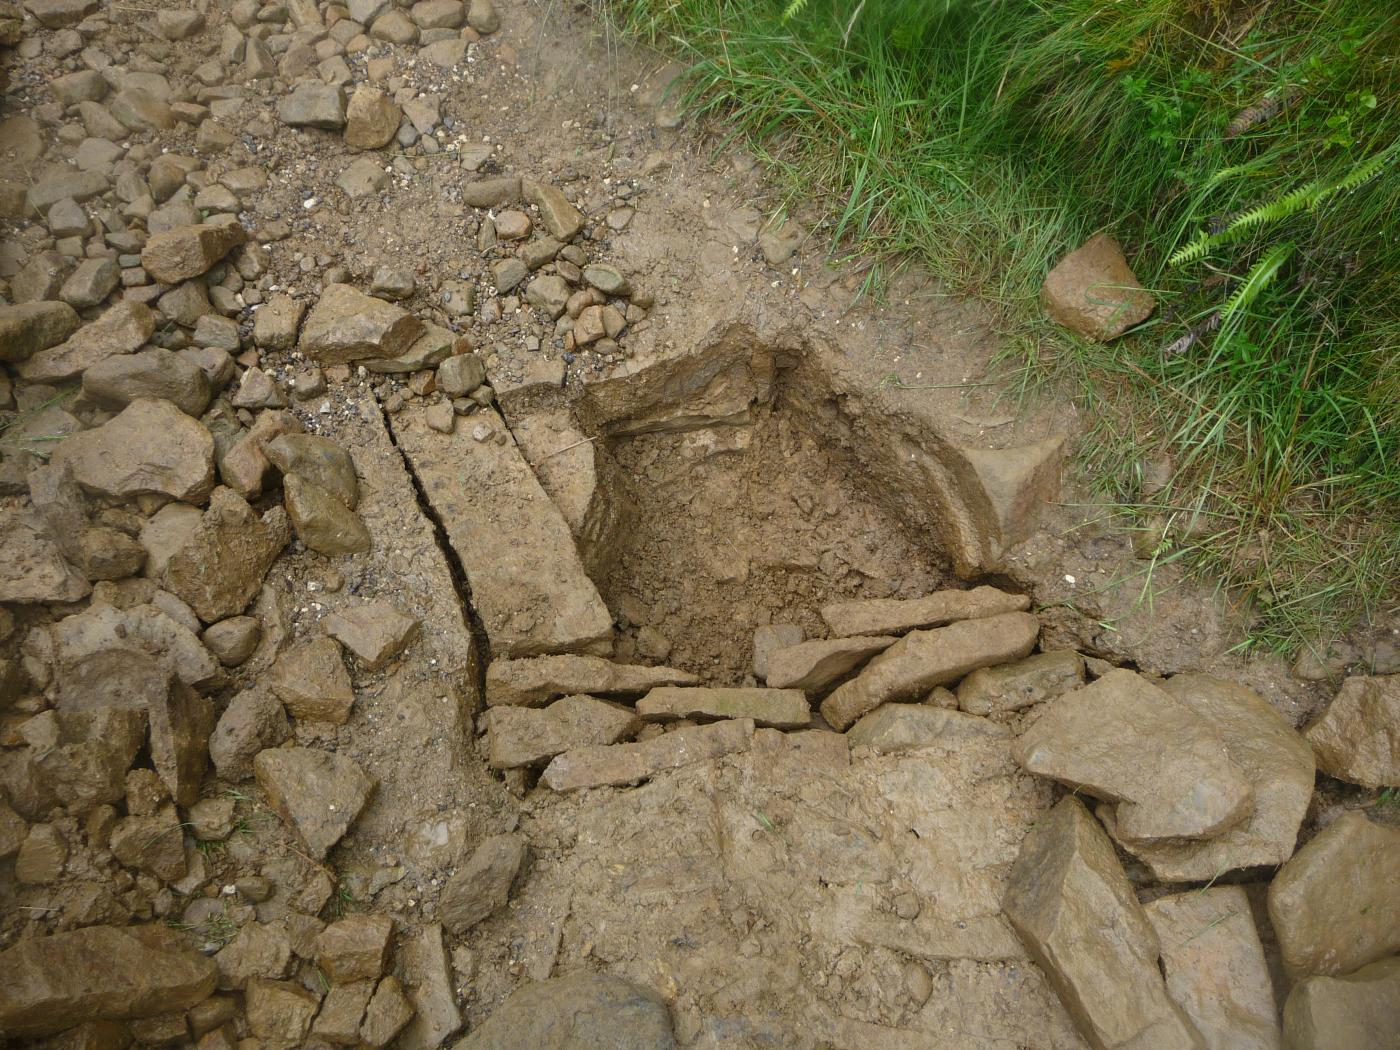 Stone pitching 3 - Gaps between the stones and filled with grit and soil